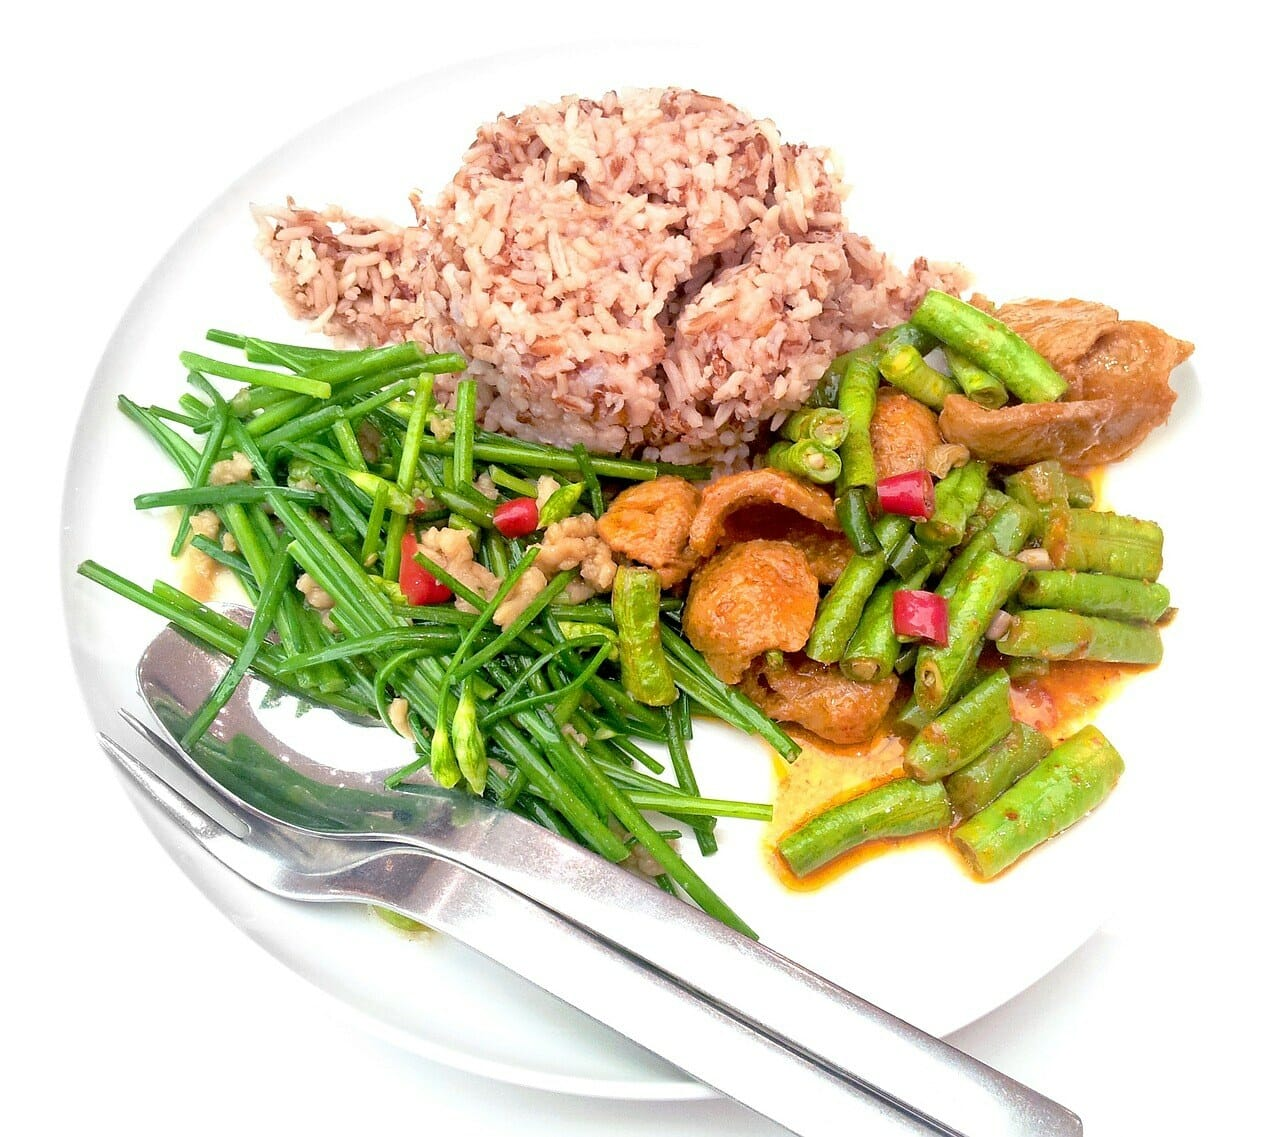 Rice and veggies, and add some protein like chicken and you're set.